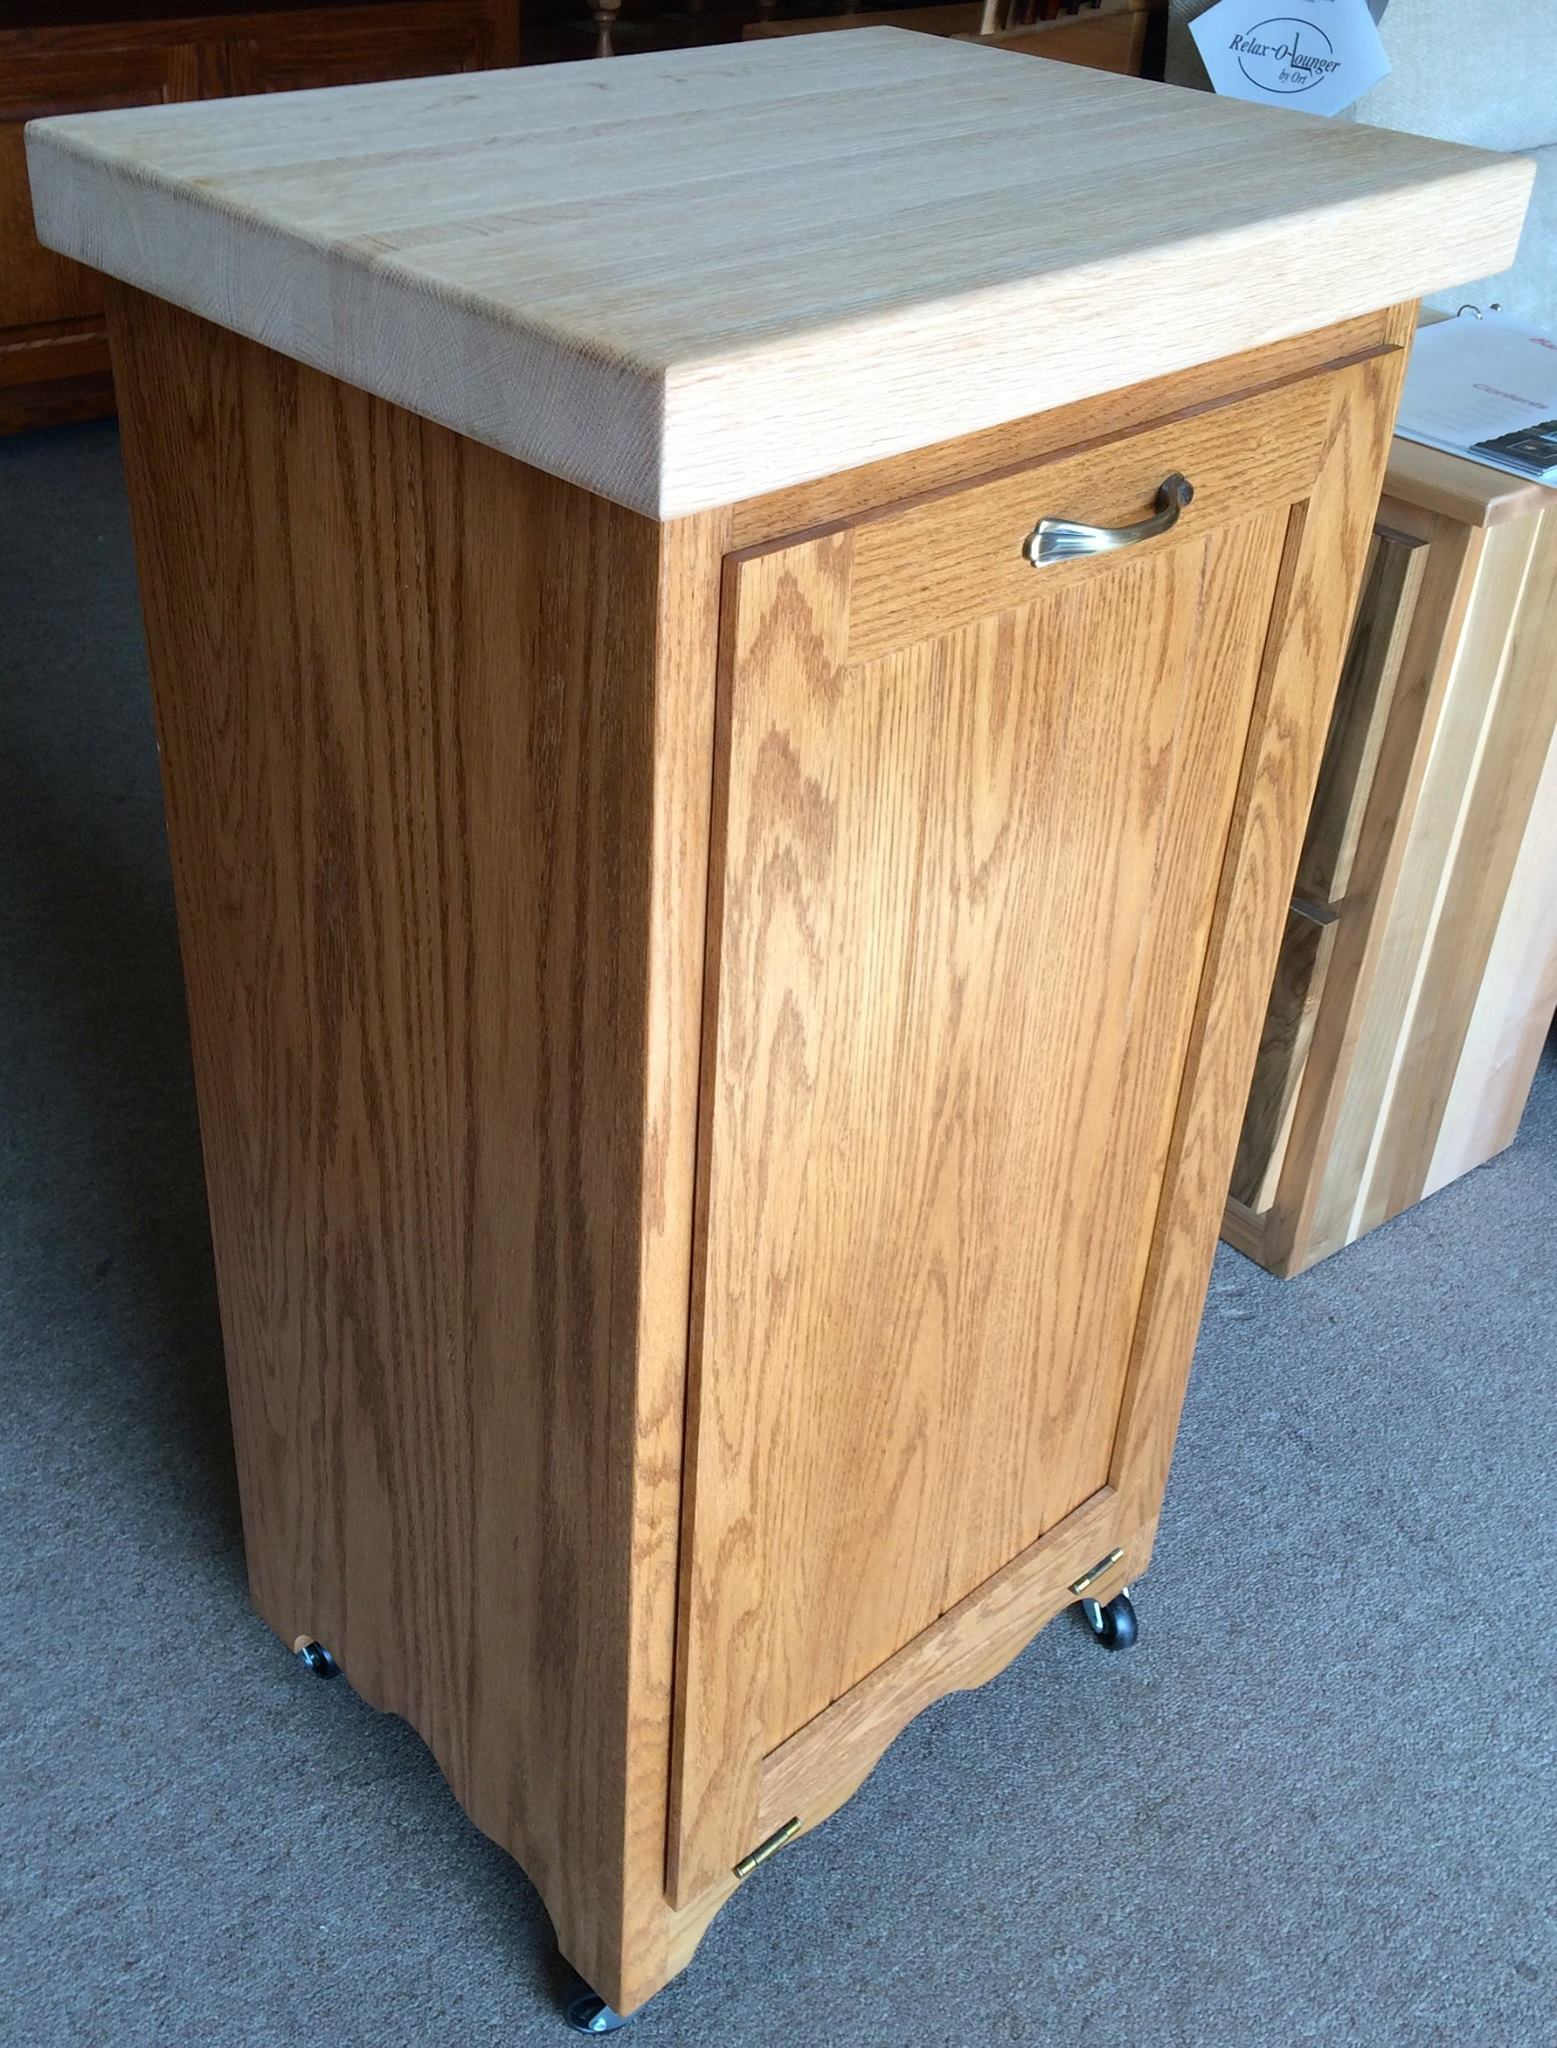 Tilt out trash bin with butcher block top amish traditions wv - Amish tilt out trash bin ...